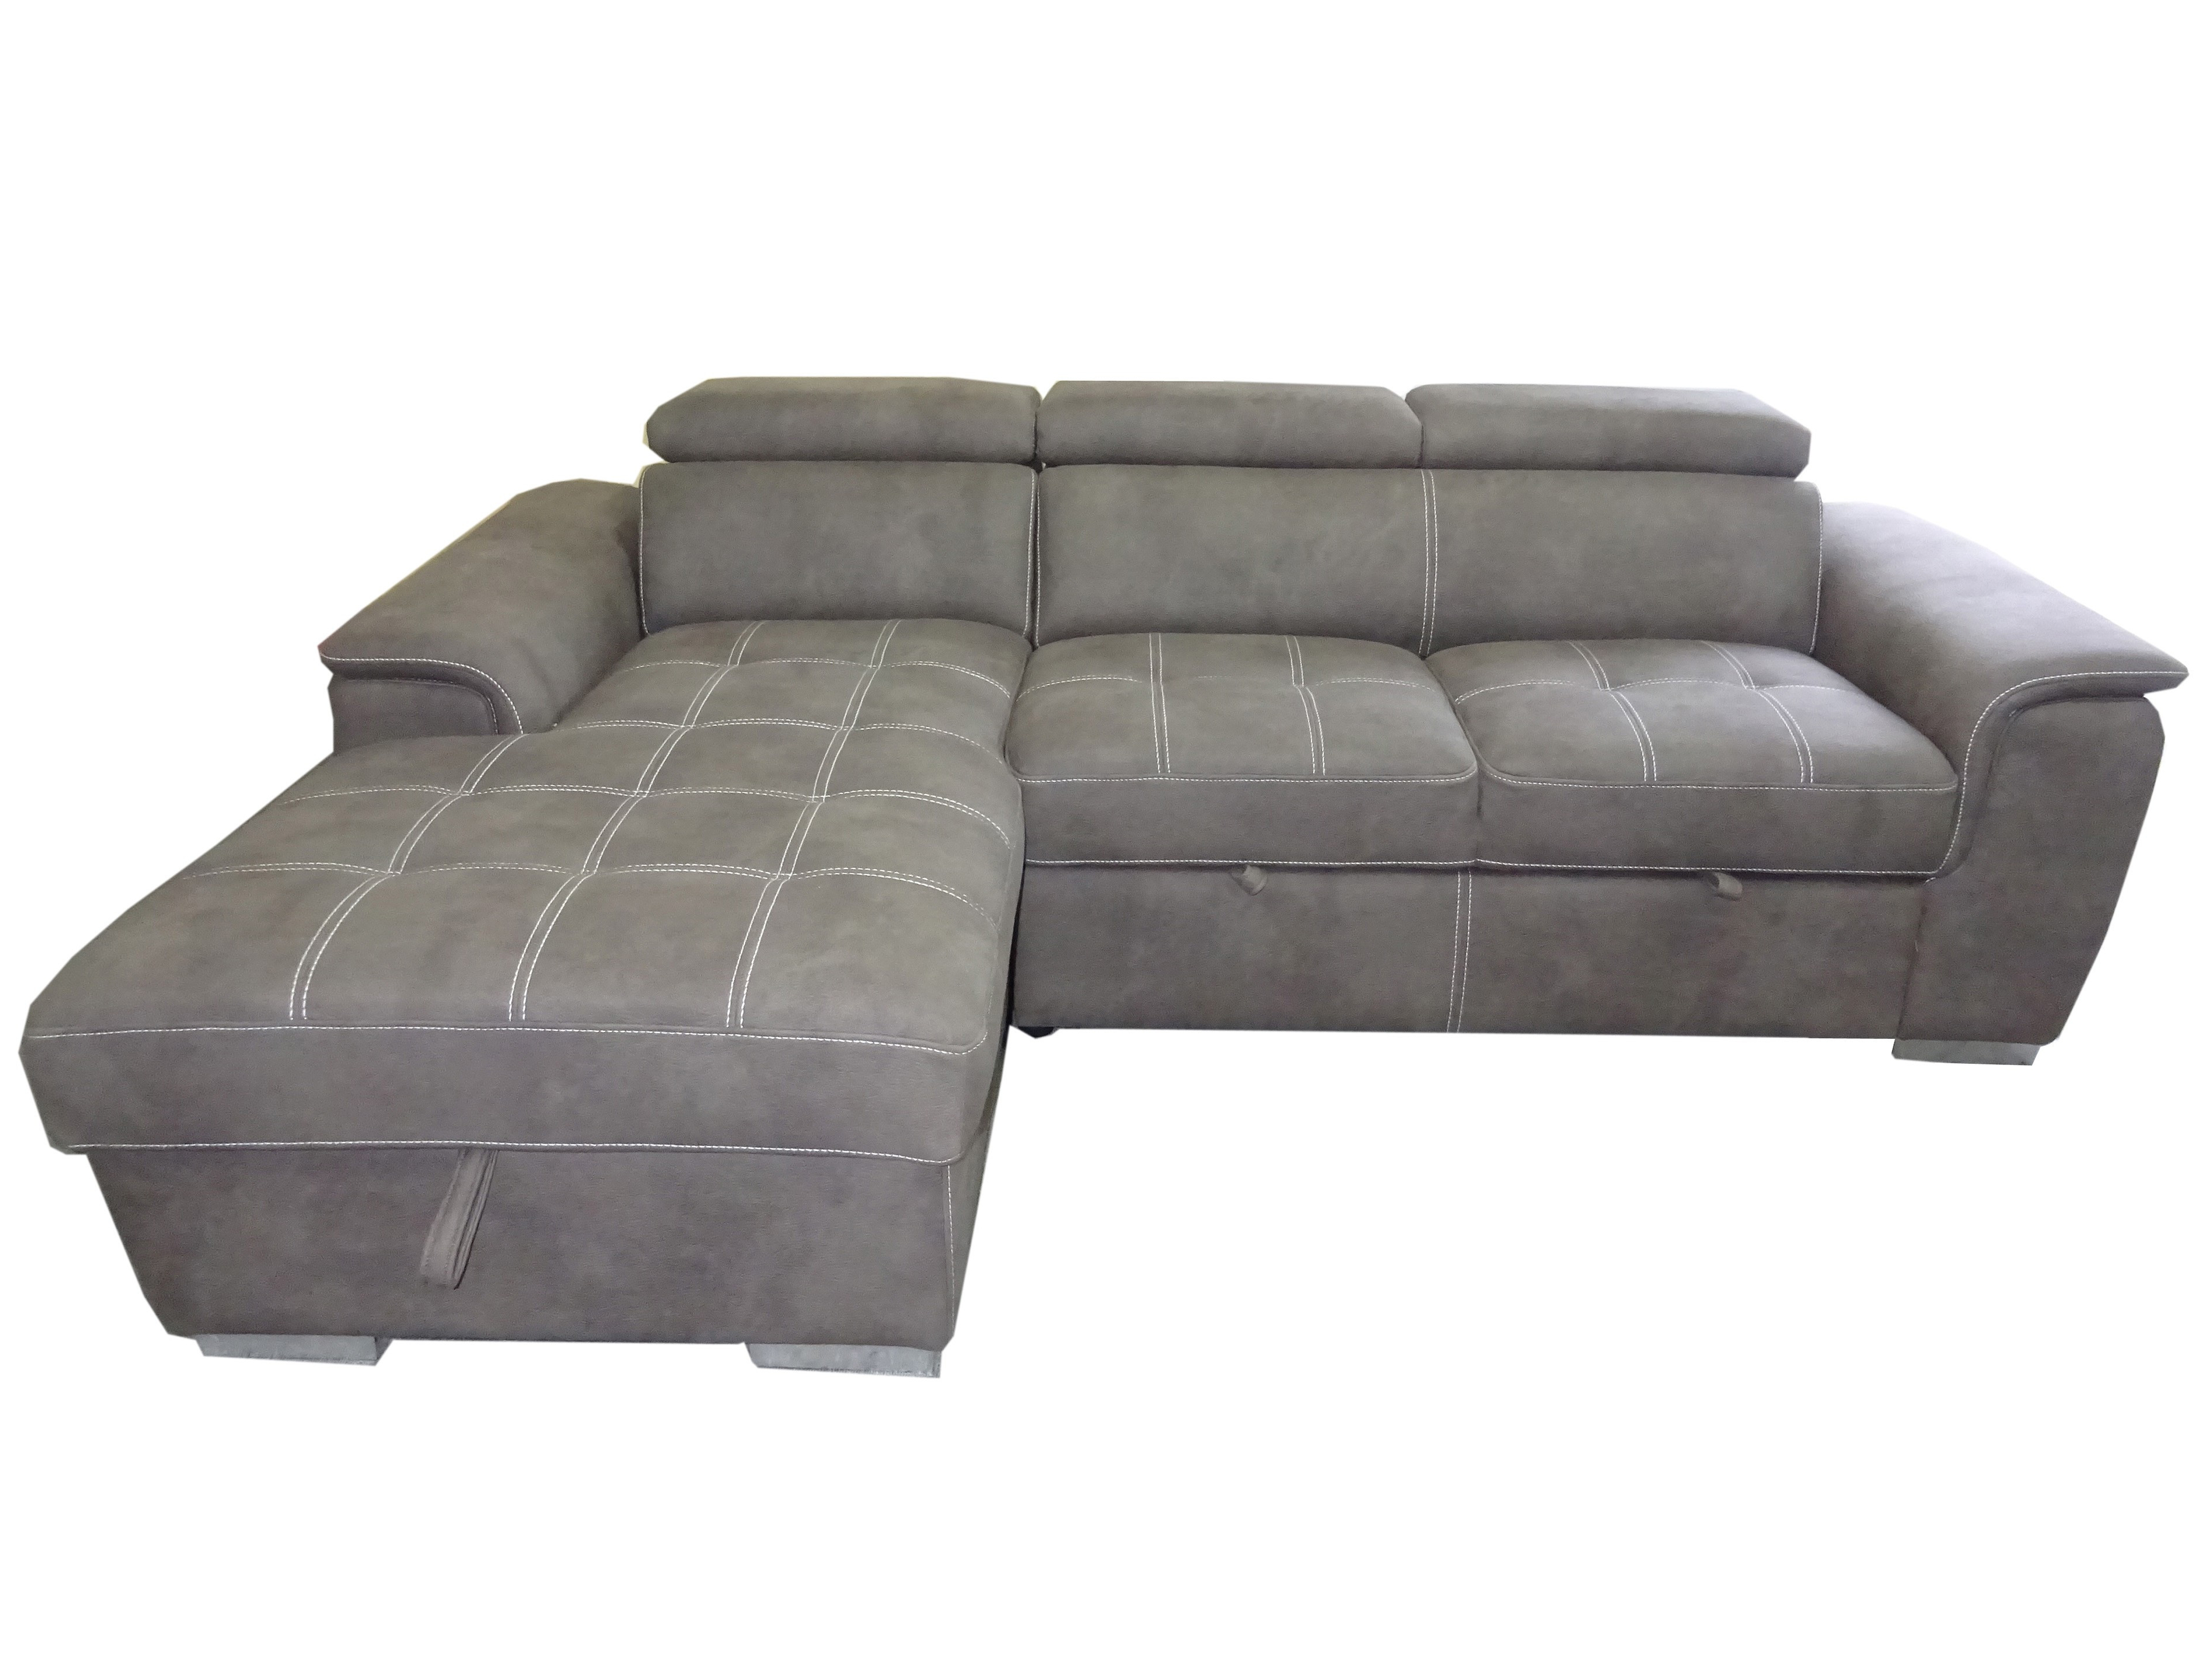 Primo Lucca 2 Piece Sectional Sofa Bed (View 15 of 20)